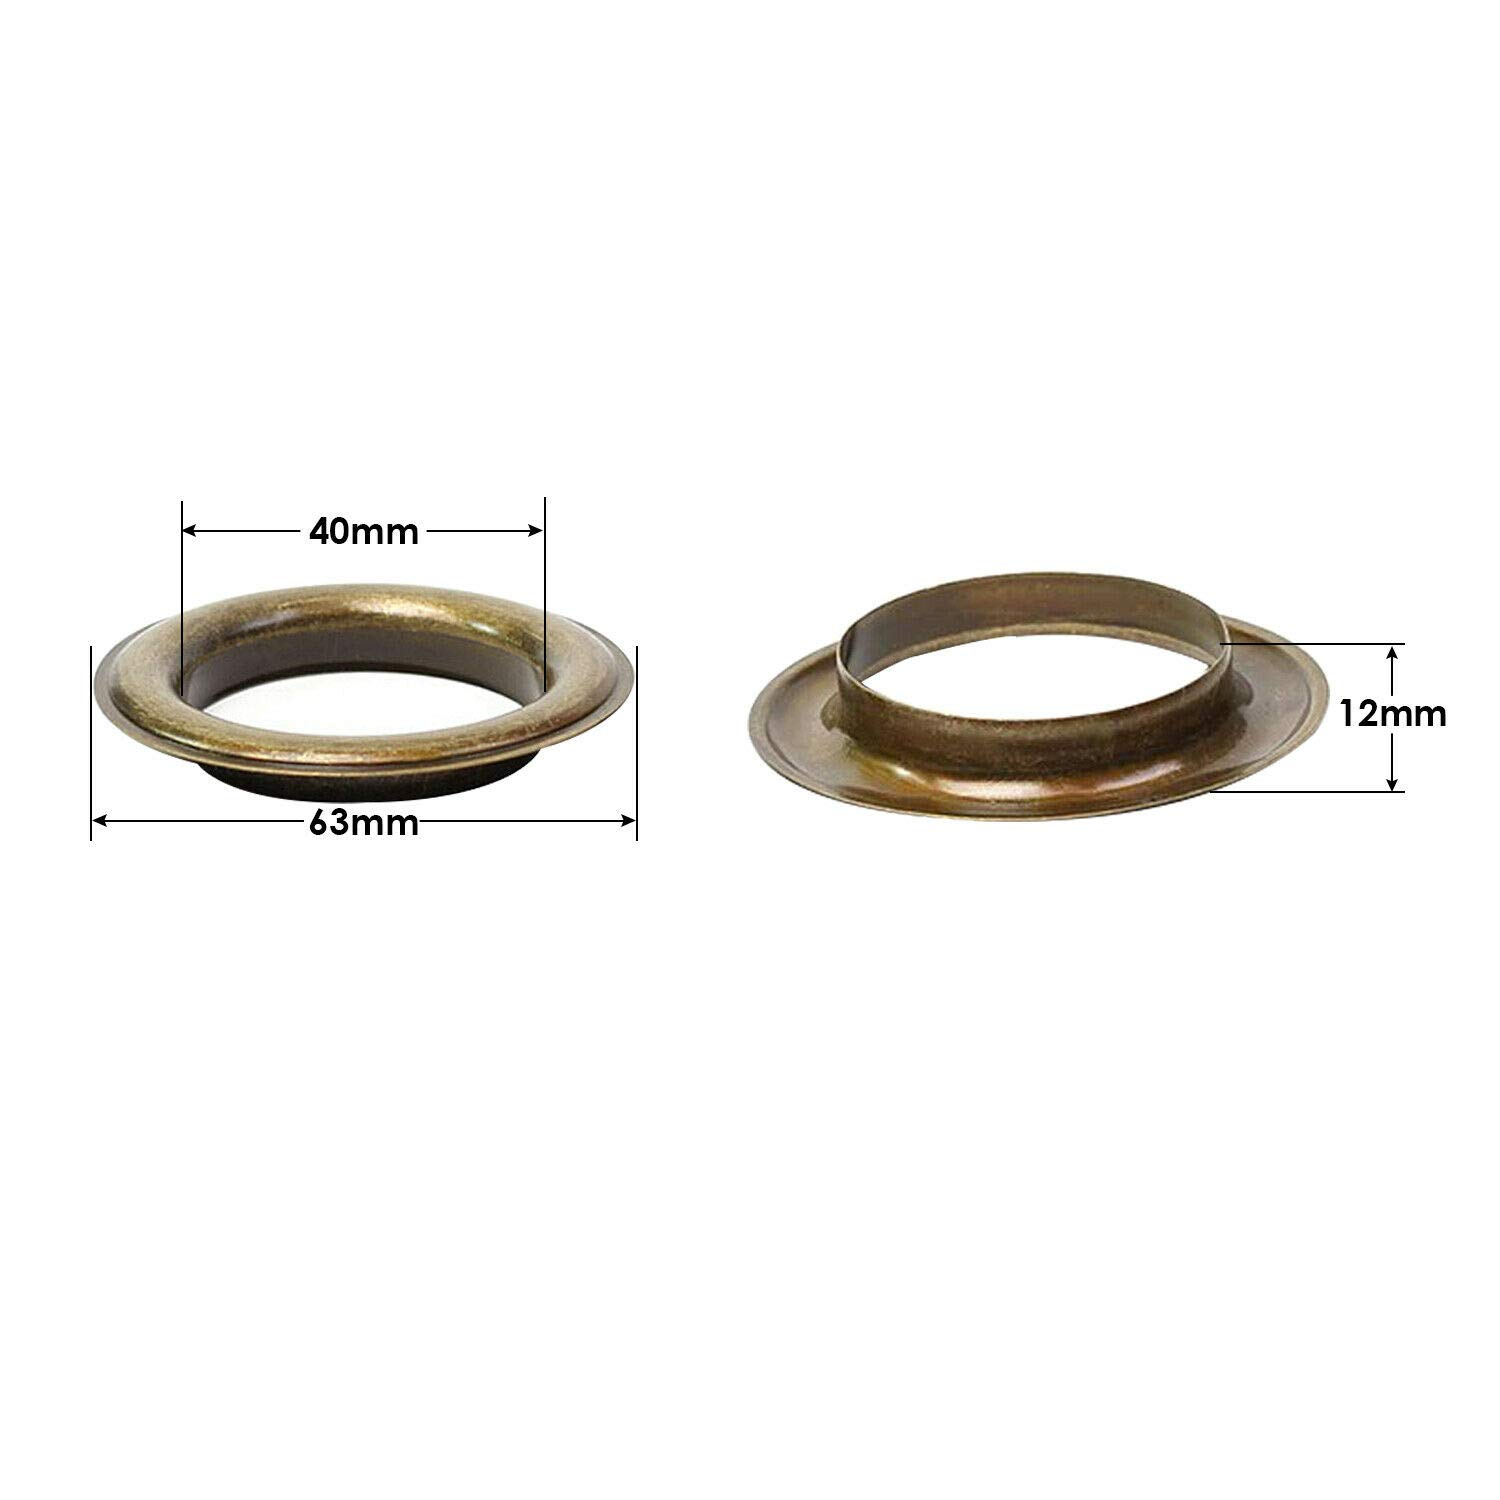 Trimming Shop 40mm Rose Gold Extra Large Eyelets Rings with Washers Pack of 10 Washers for Vinyl Banners /& Canvas Holding Grommets for Clothing and Leathercraft